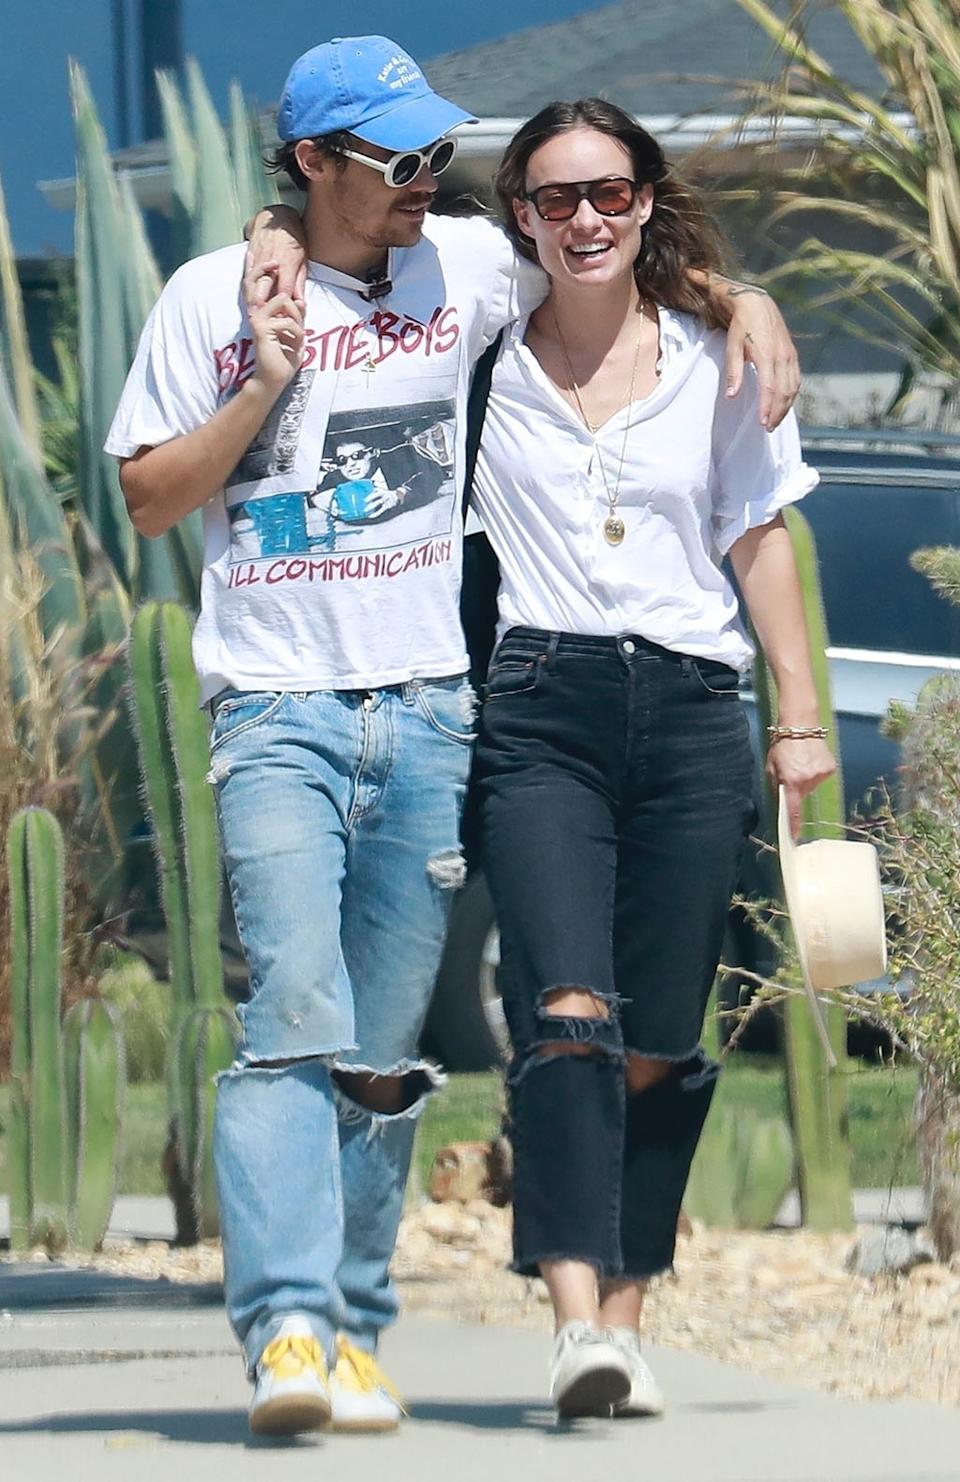 Harry Styles and girlfriend Olivia Wilde wearing matching outfits while out in Los Angeles earlier this month.